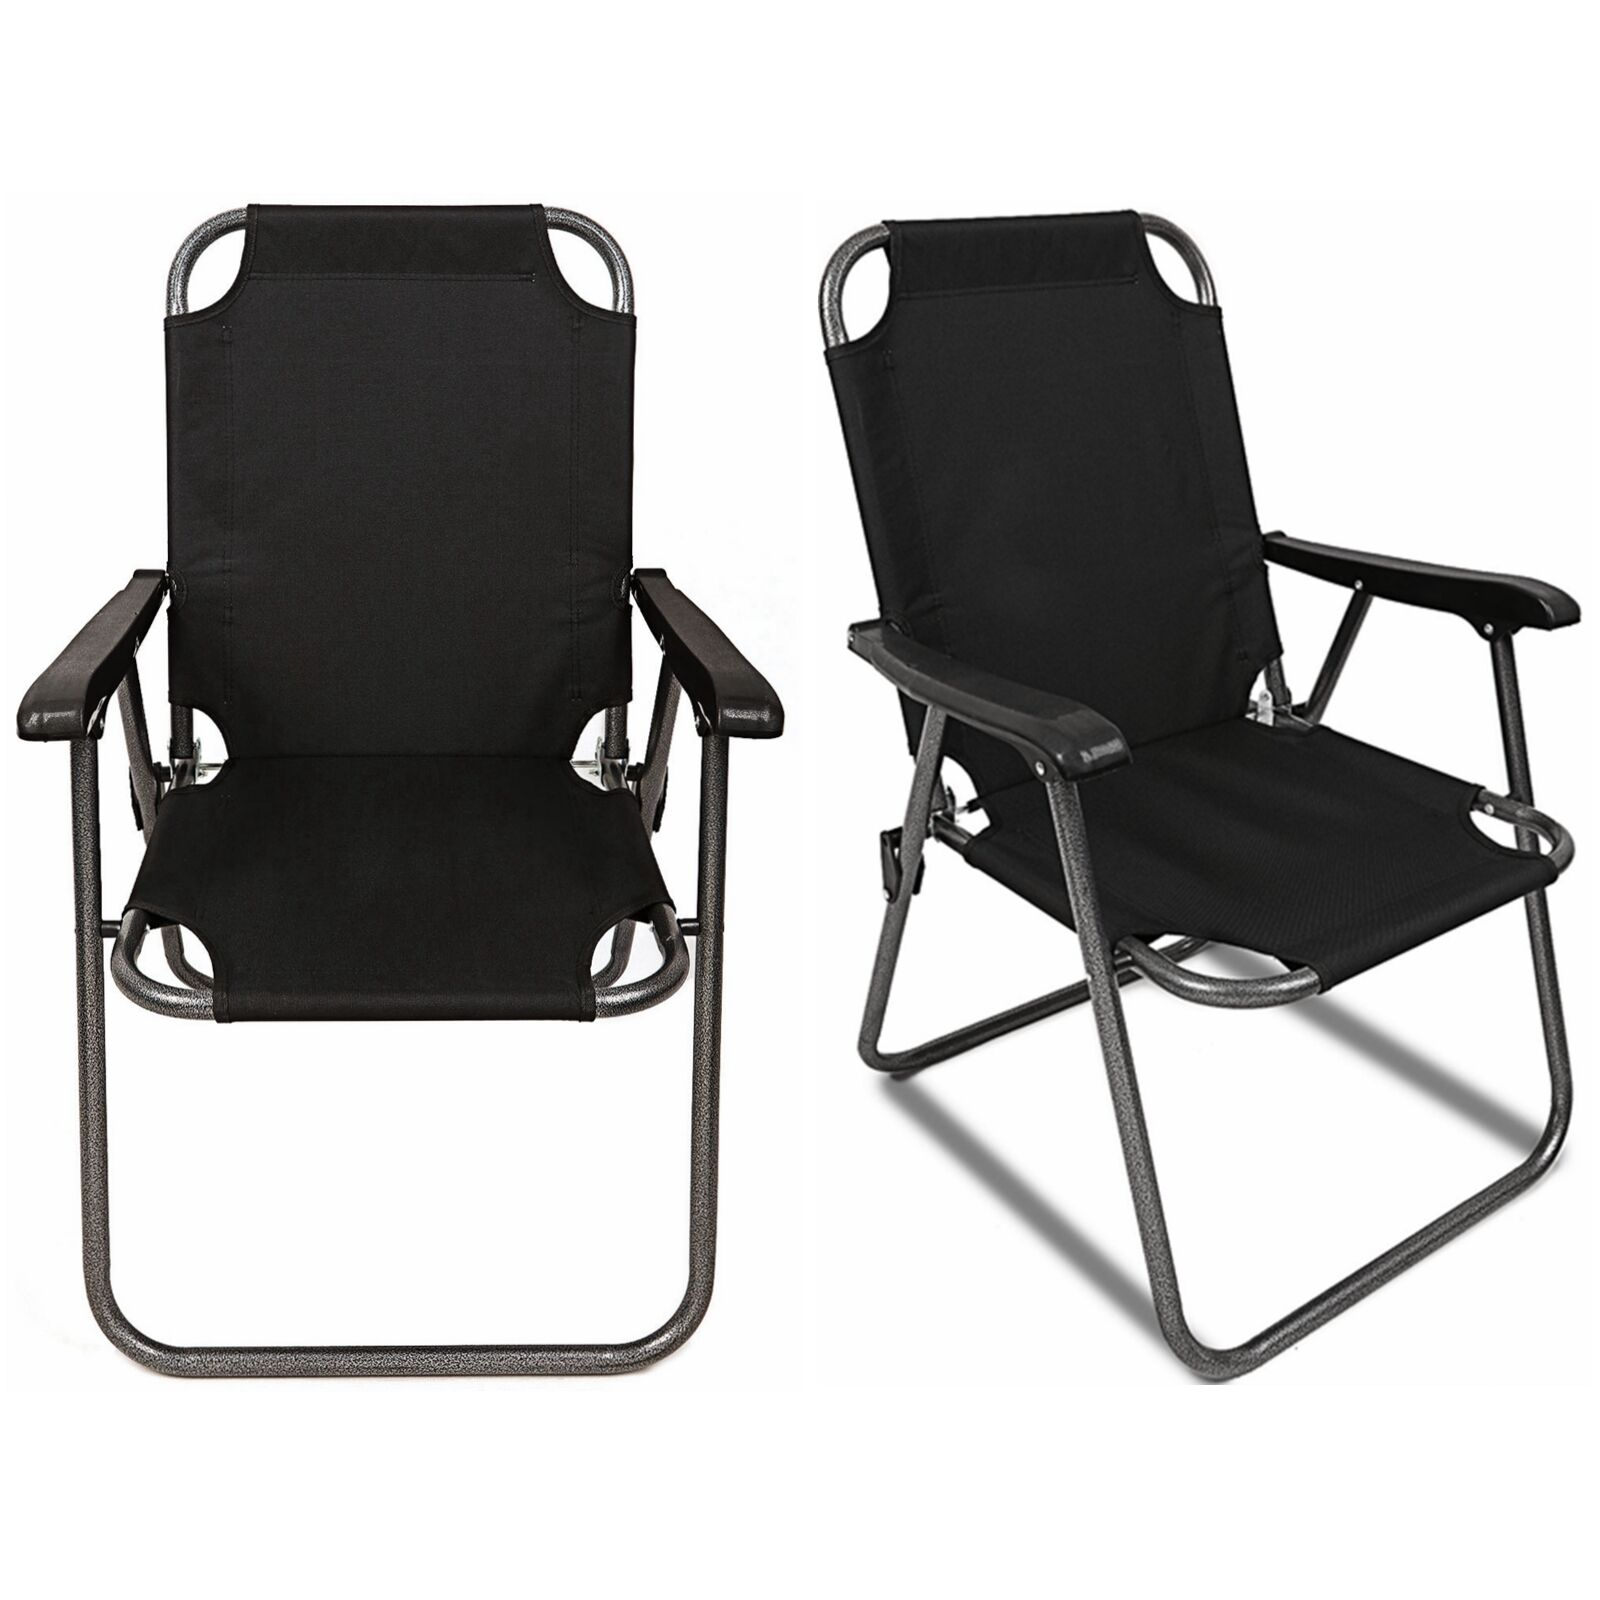 2 Black Outdoor Patio Folding Beach Chair Camping Chair